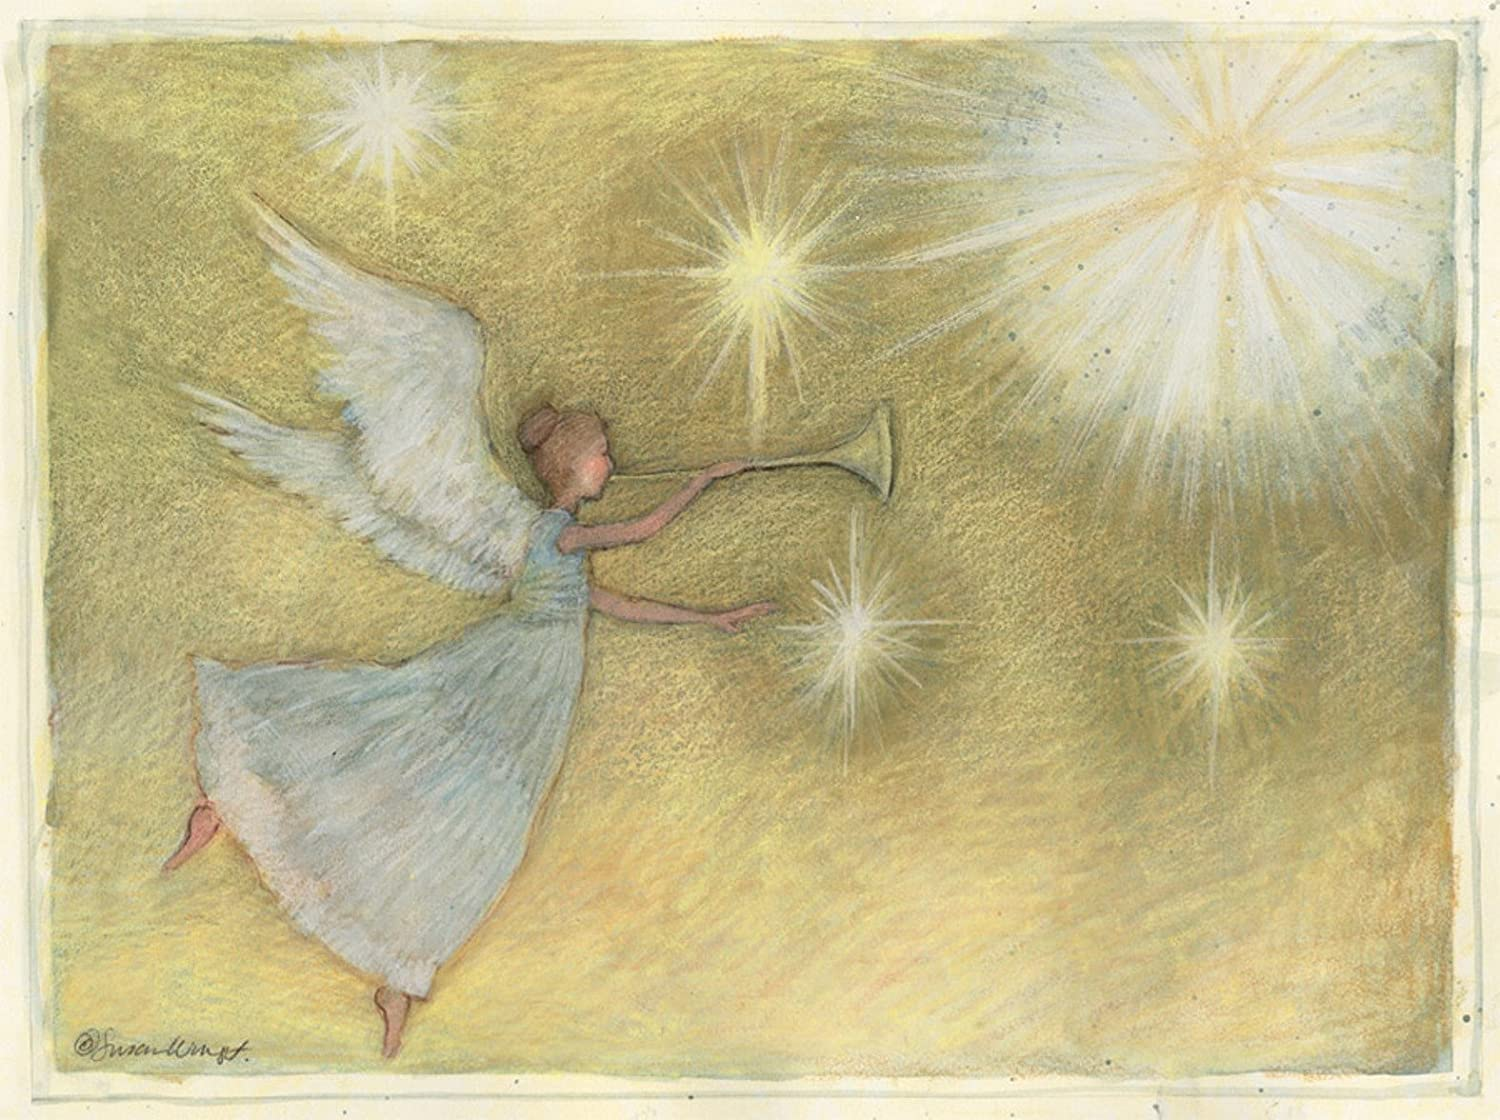 LANG Golden Angel, Classic Christmas Cards, Artwork by Susan Winget ...